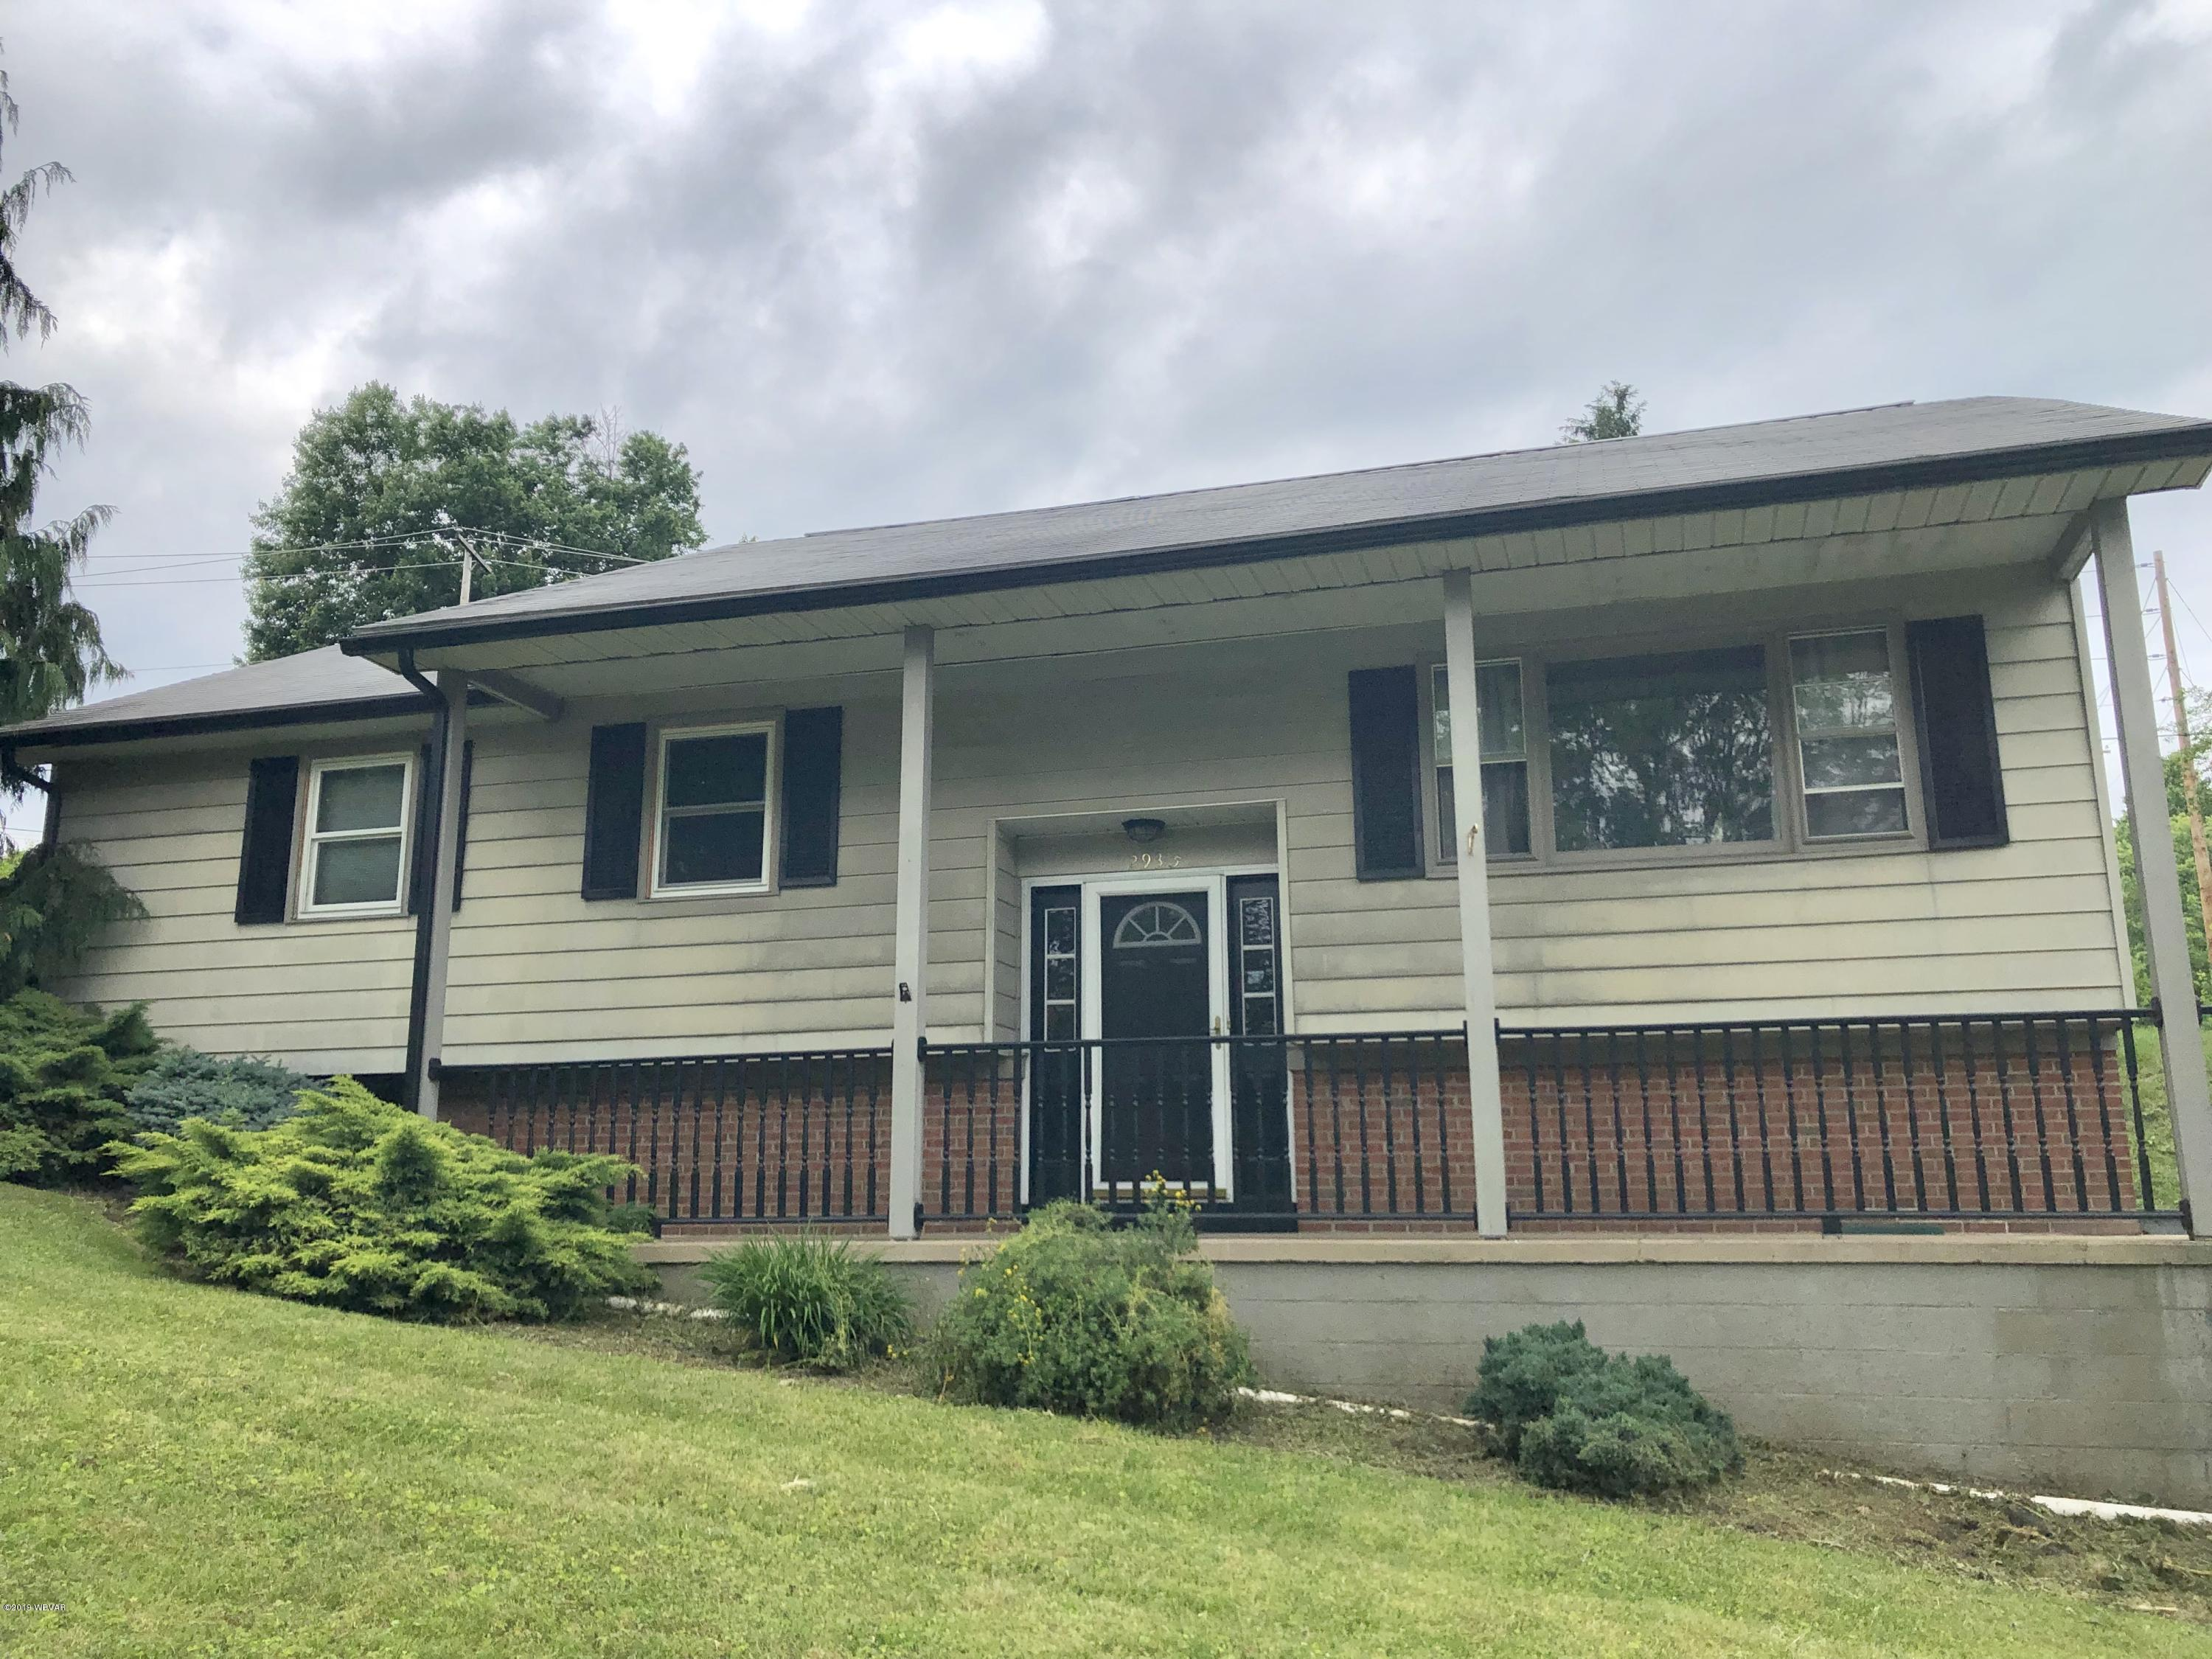 2935 FOUR MILE DRIVE,Montoursville,PA 17754,4 Bedrooms Bedrooms,3 BathroomsBathrooms,Residential,FOUR MILE,WB-88521